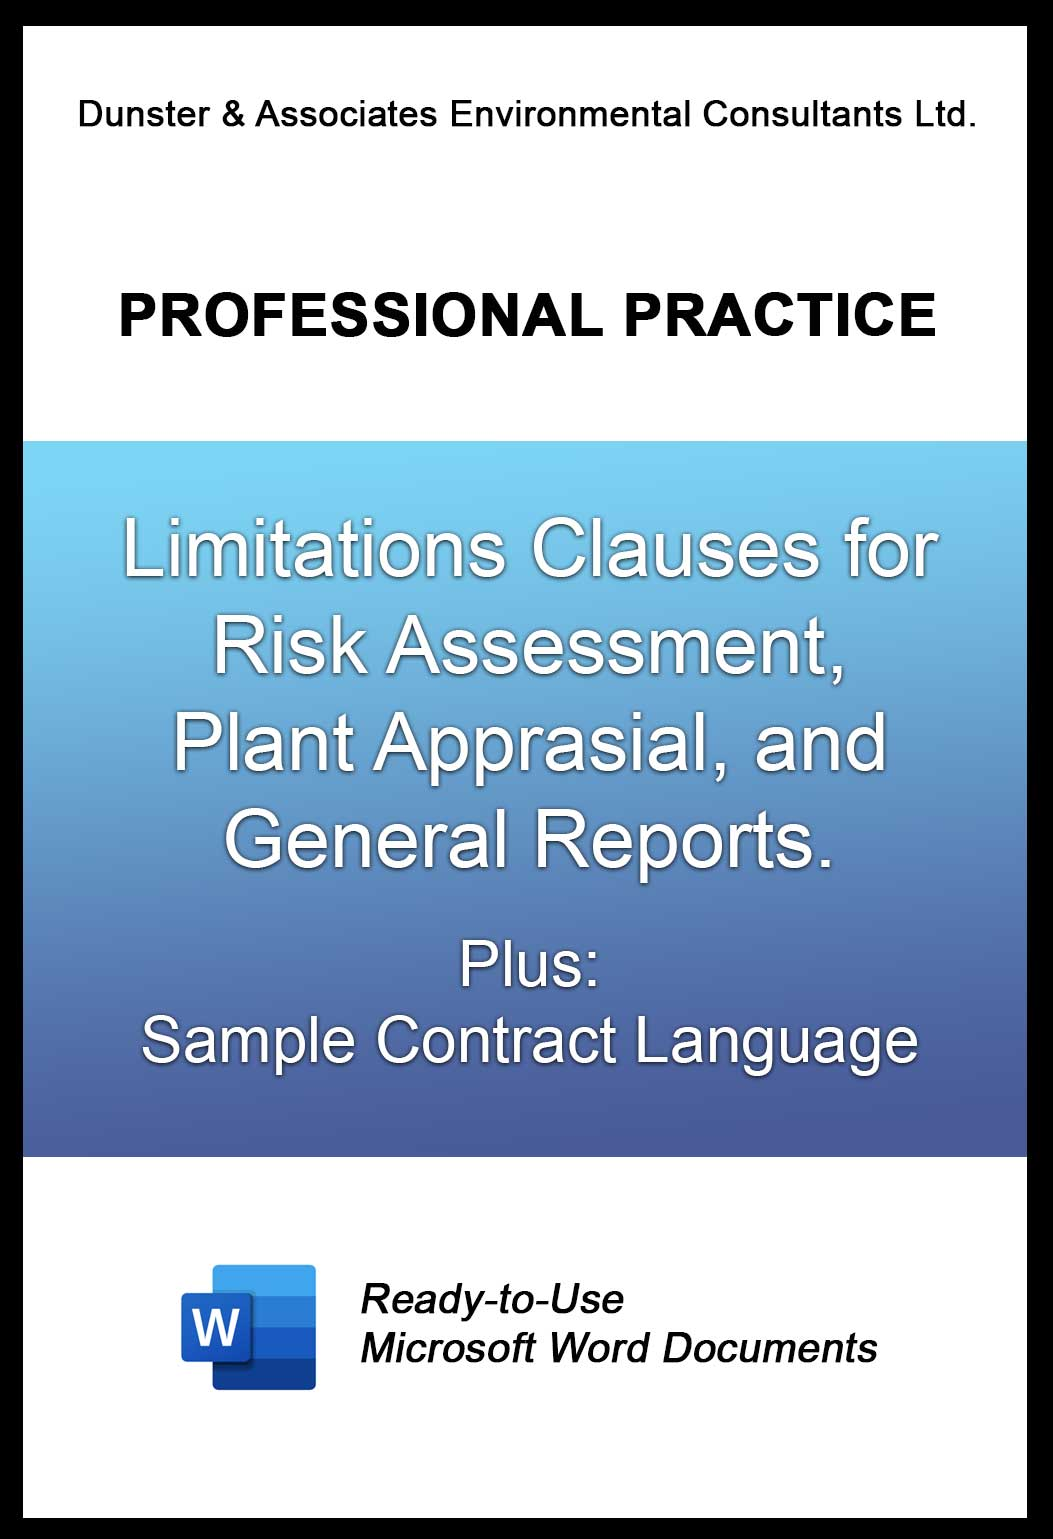 Limitations Clauses for Risk and Appraisal Reports + Sample Contract Language